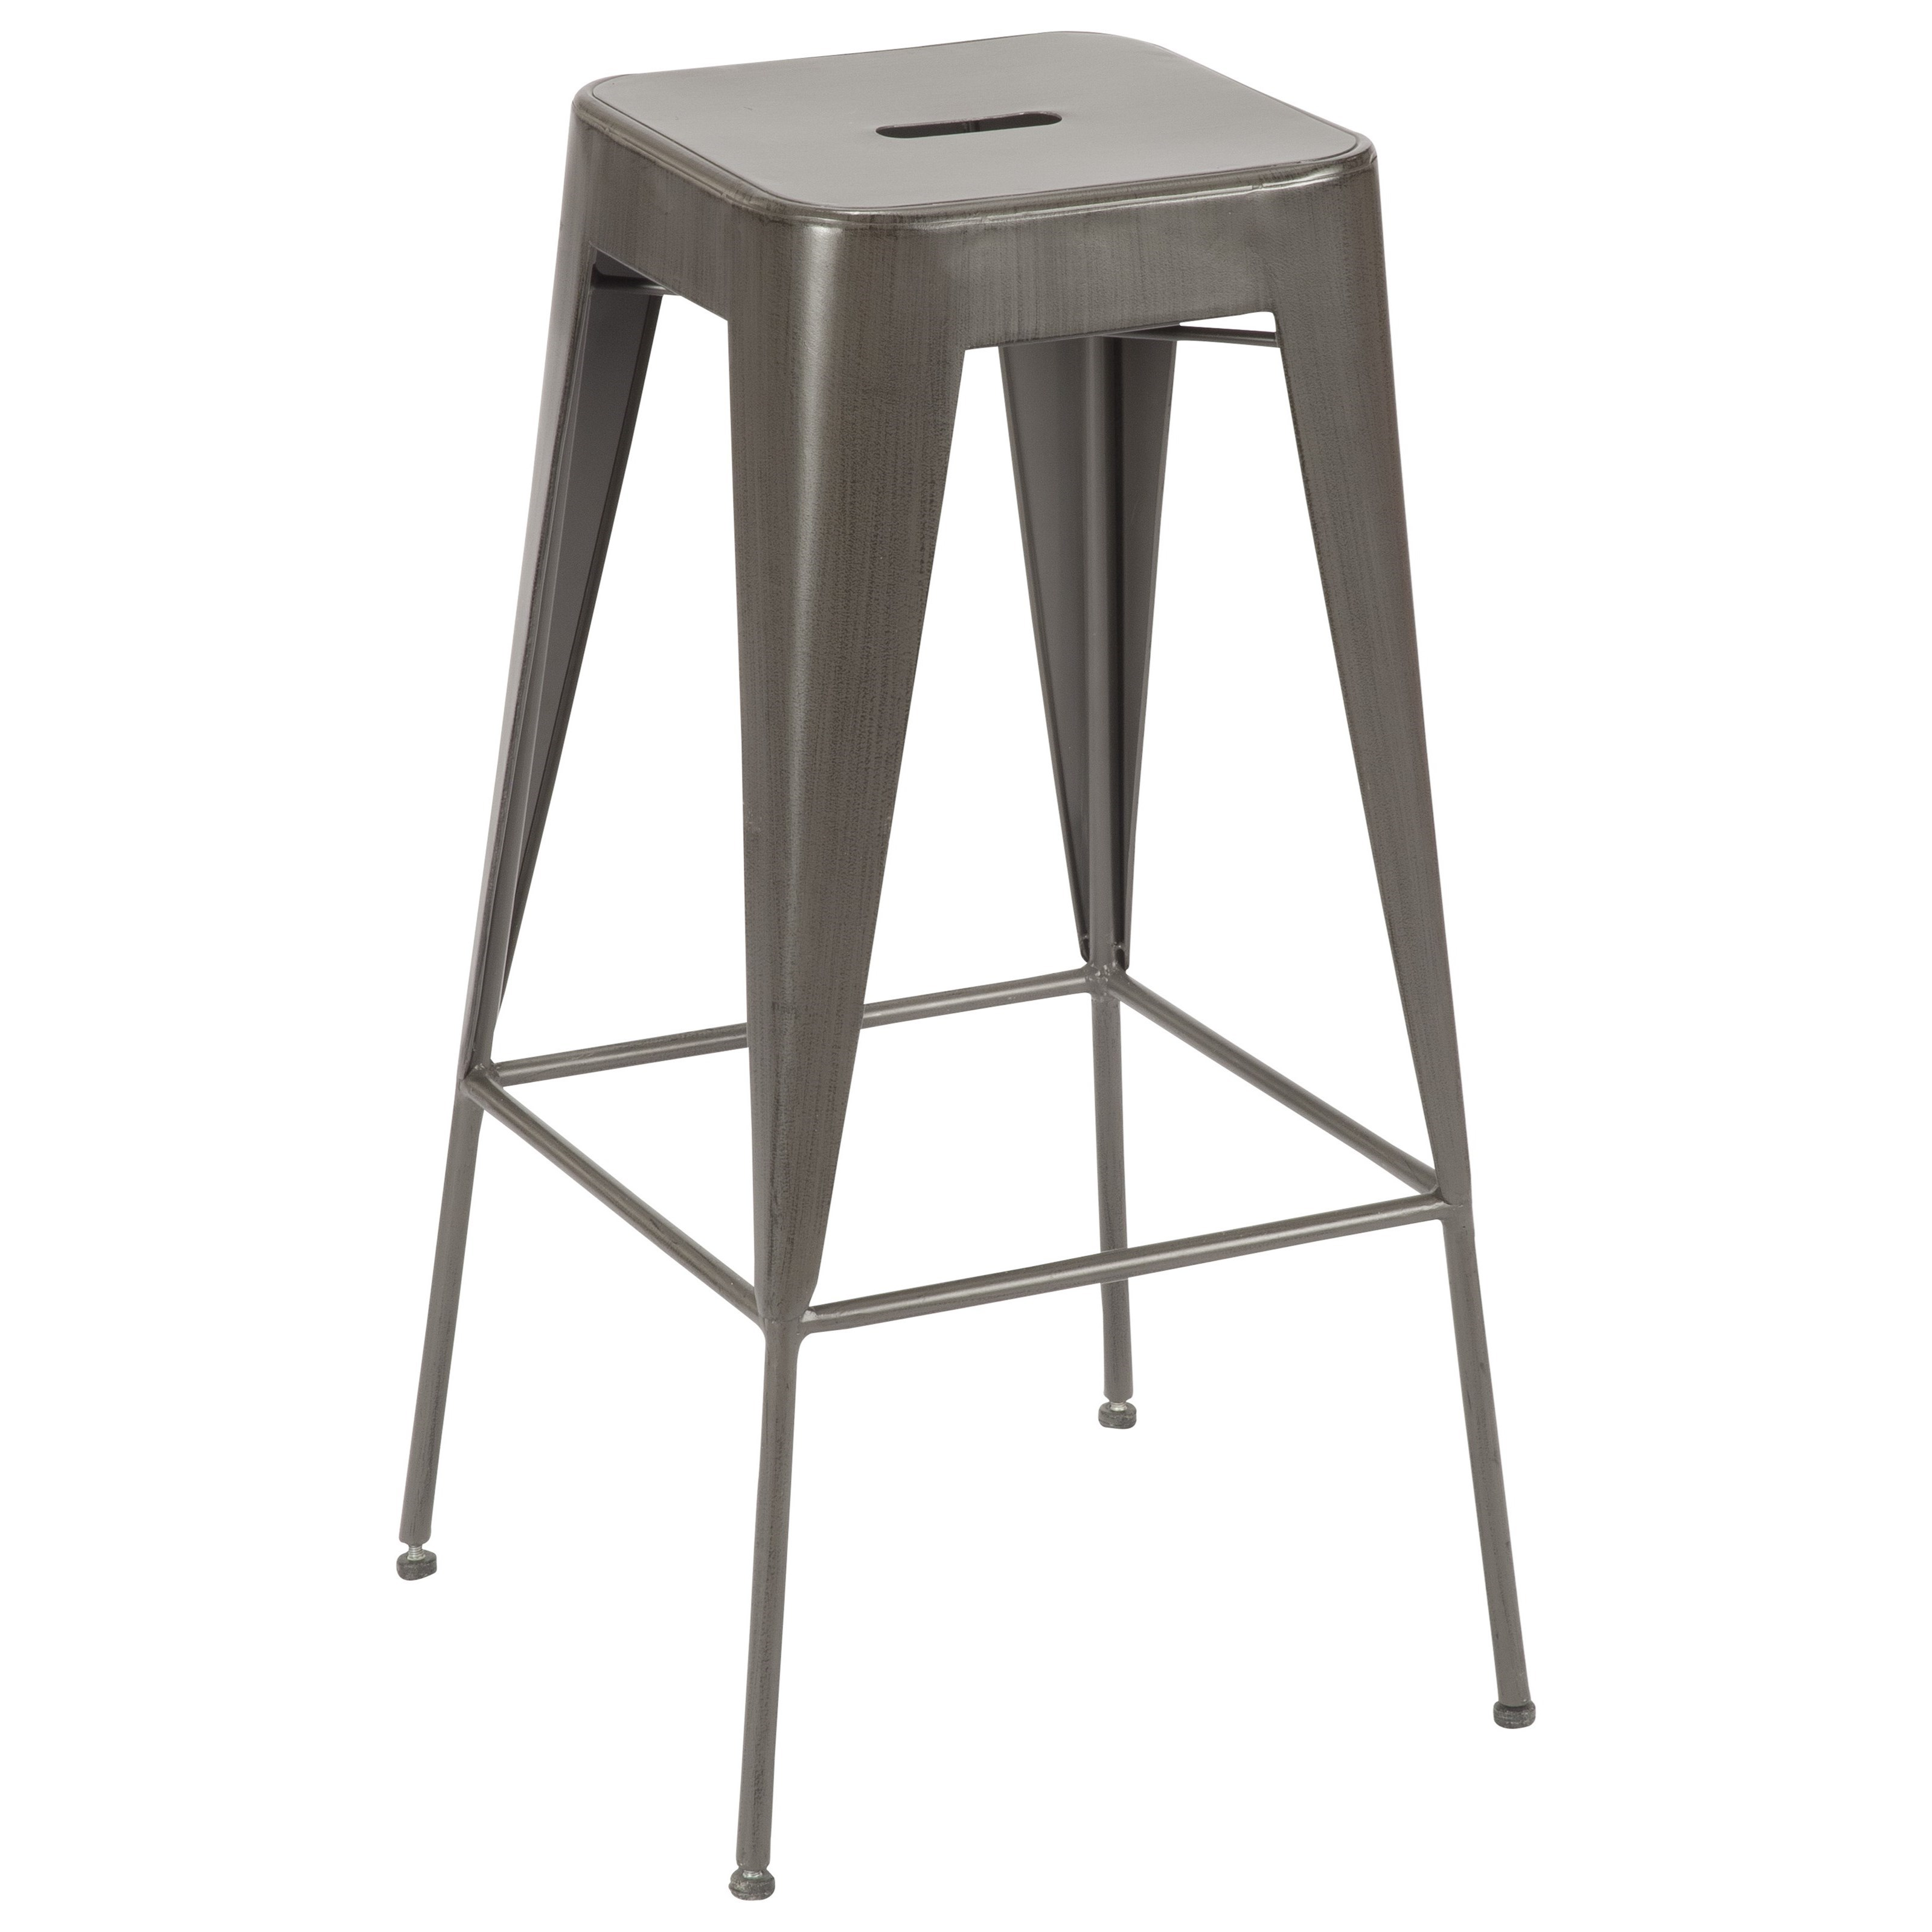 Moe's Home Collection Brooklyn Metal Bar Stool  - Item Number: WN-1007-20